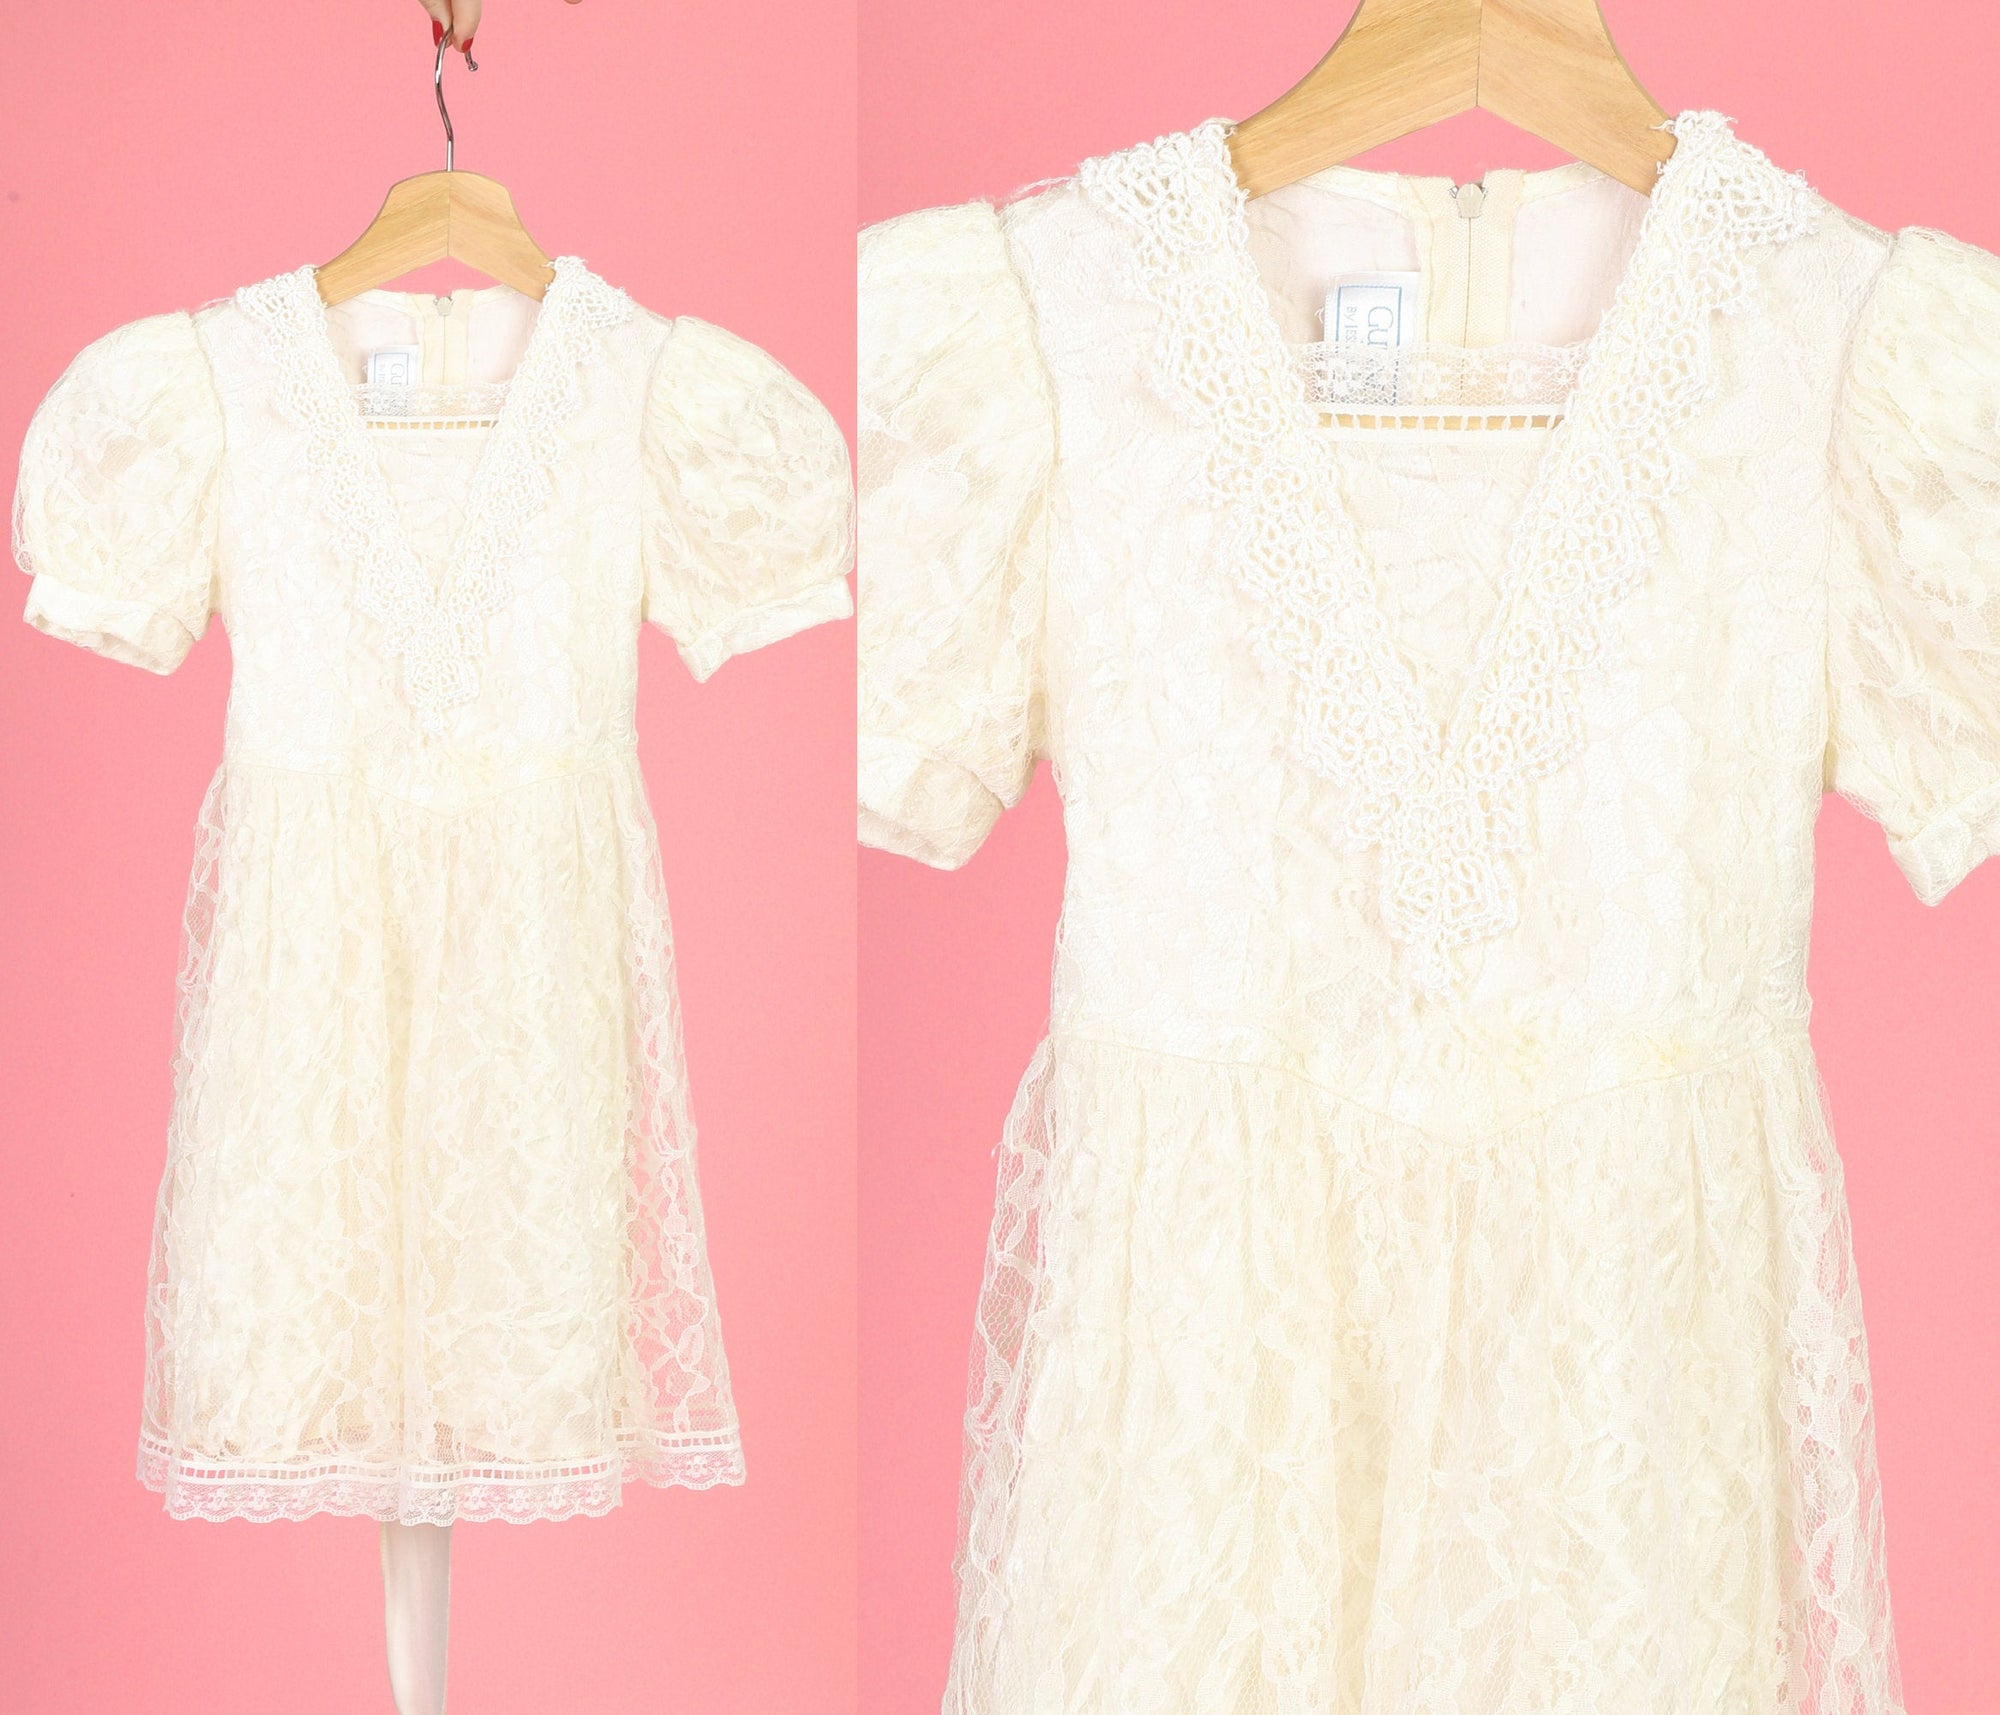 70s Gunne Sax Lace Toddler Dress - 2T 3T